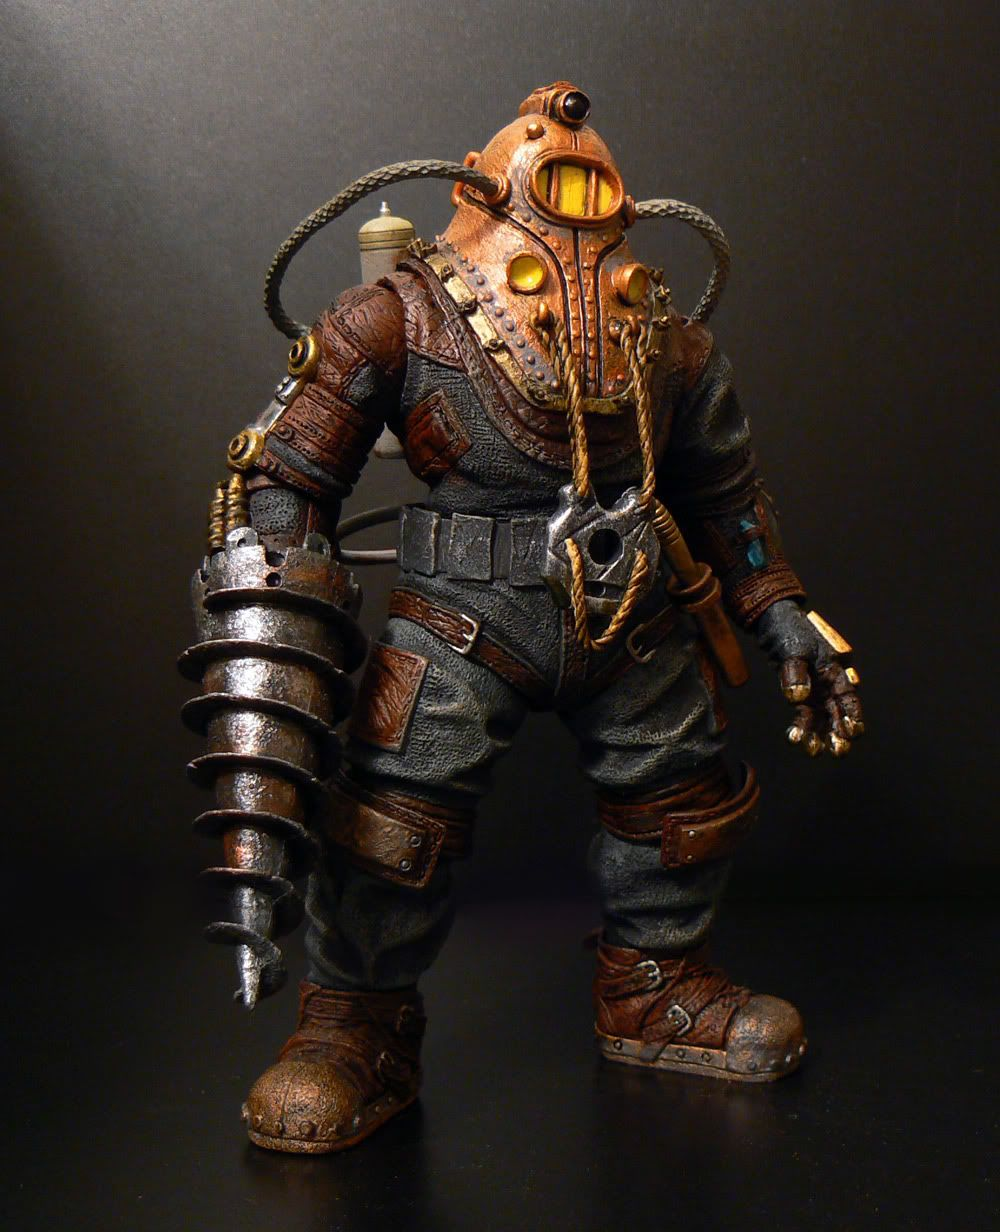 Subject Delta Big Daddy (Bioshock) - Toy Discussion at